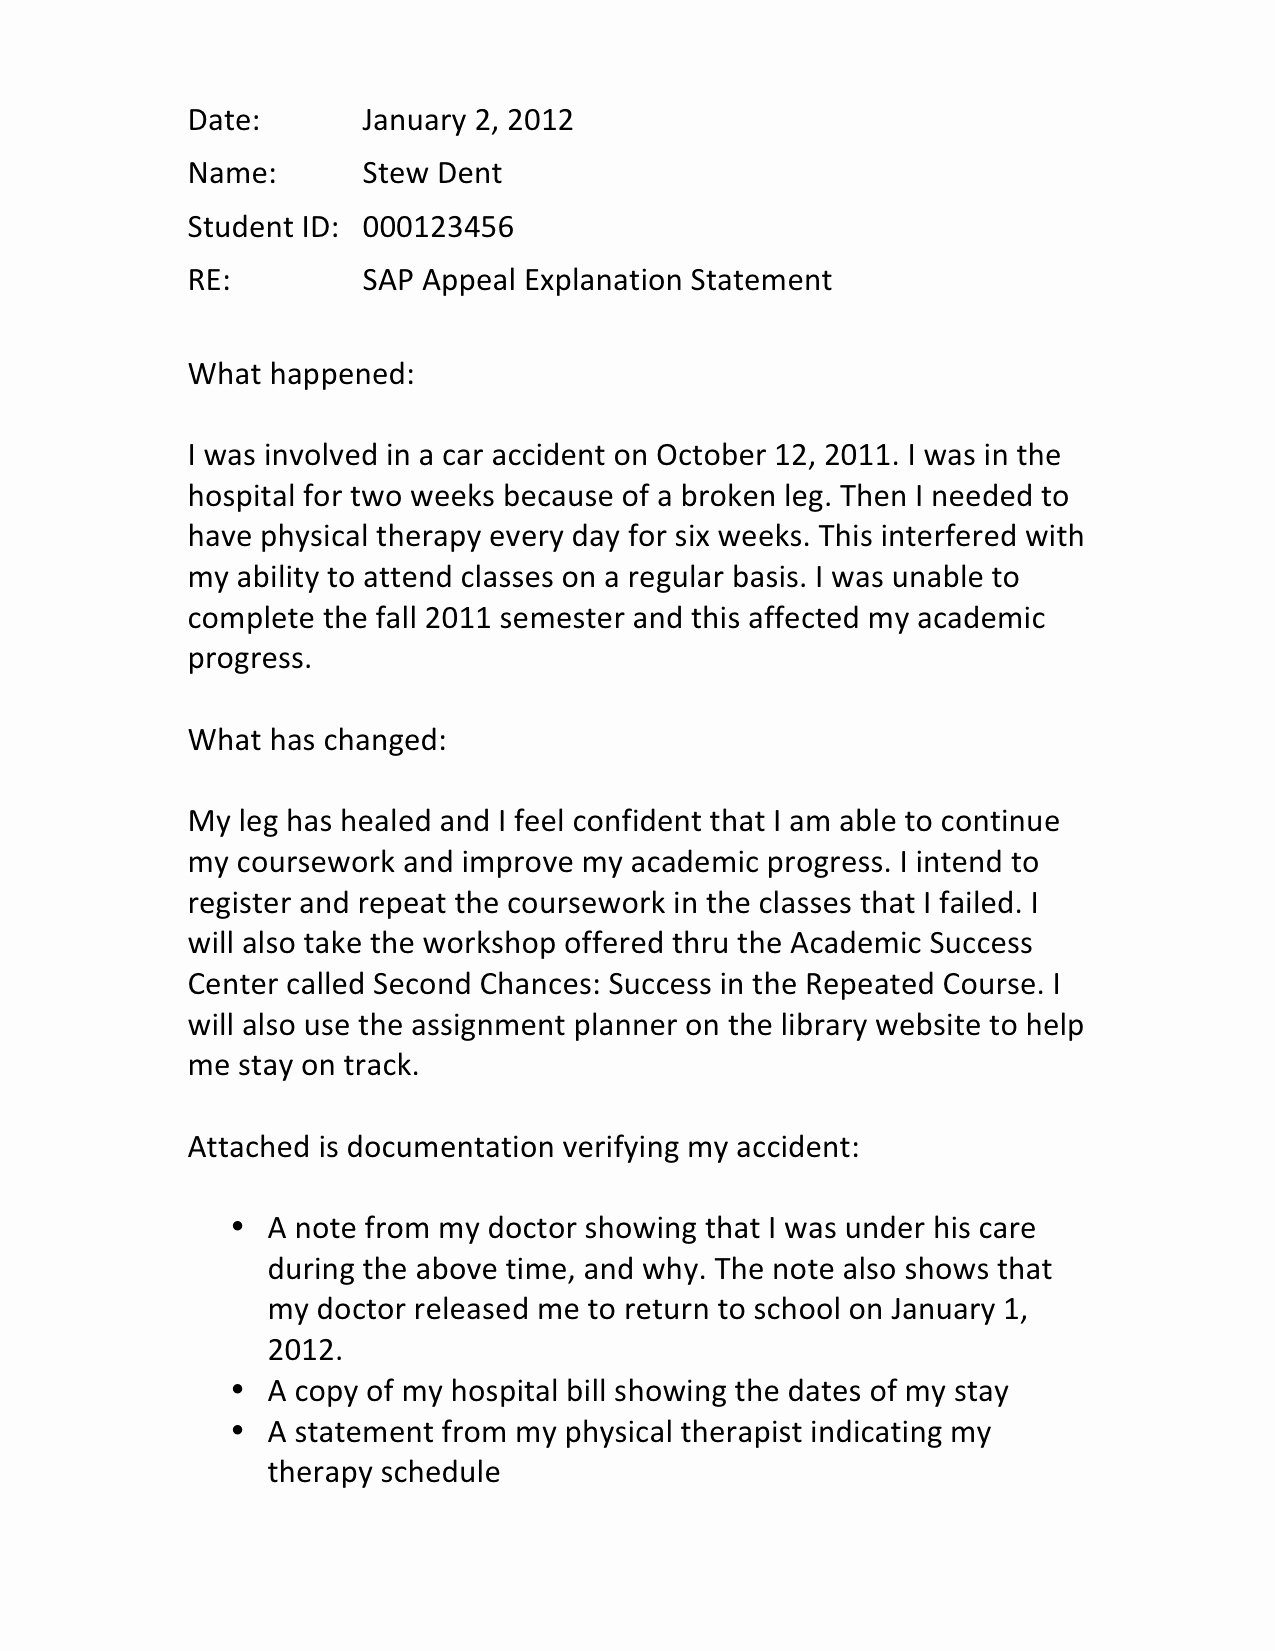 Sap Appeal Letter Best Of Writing A Successful Sap Appeal Financial Aid Wayne